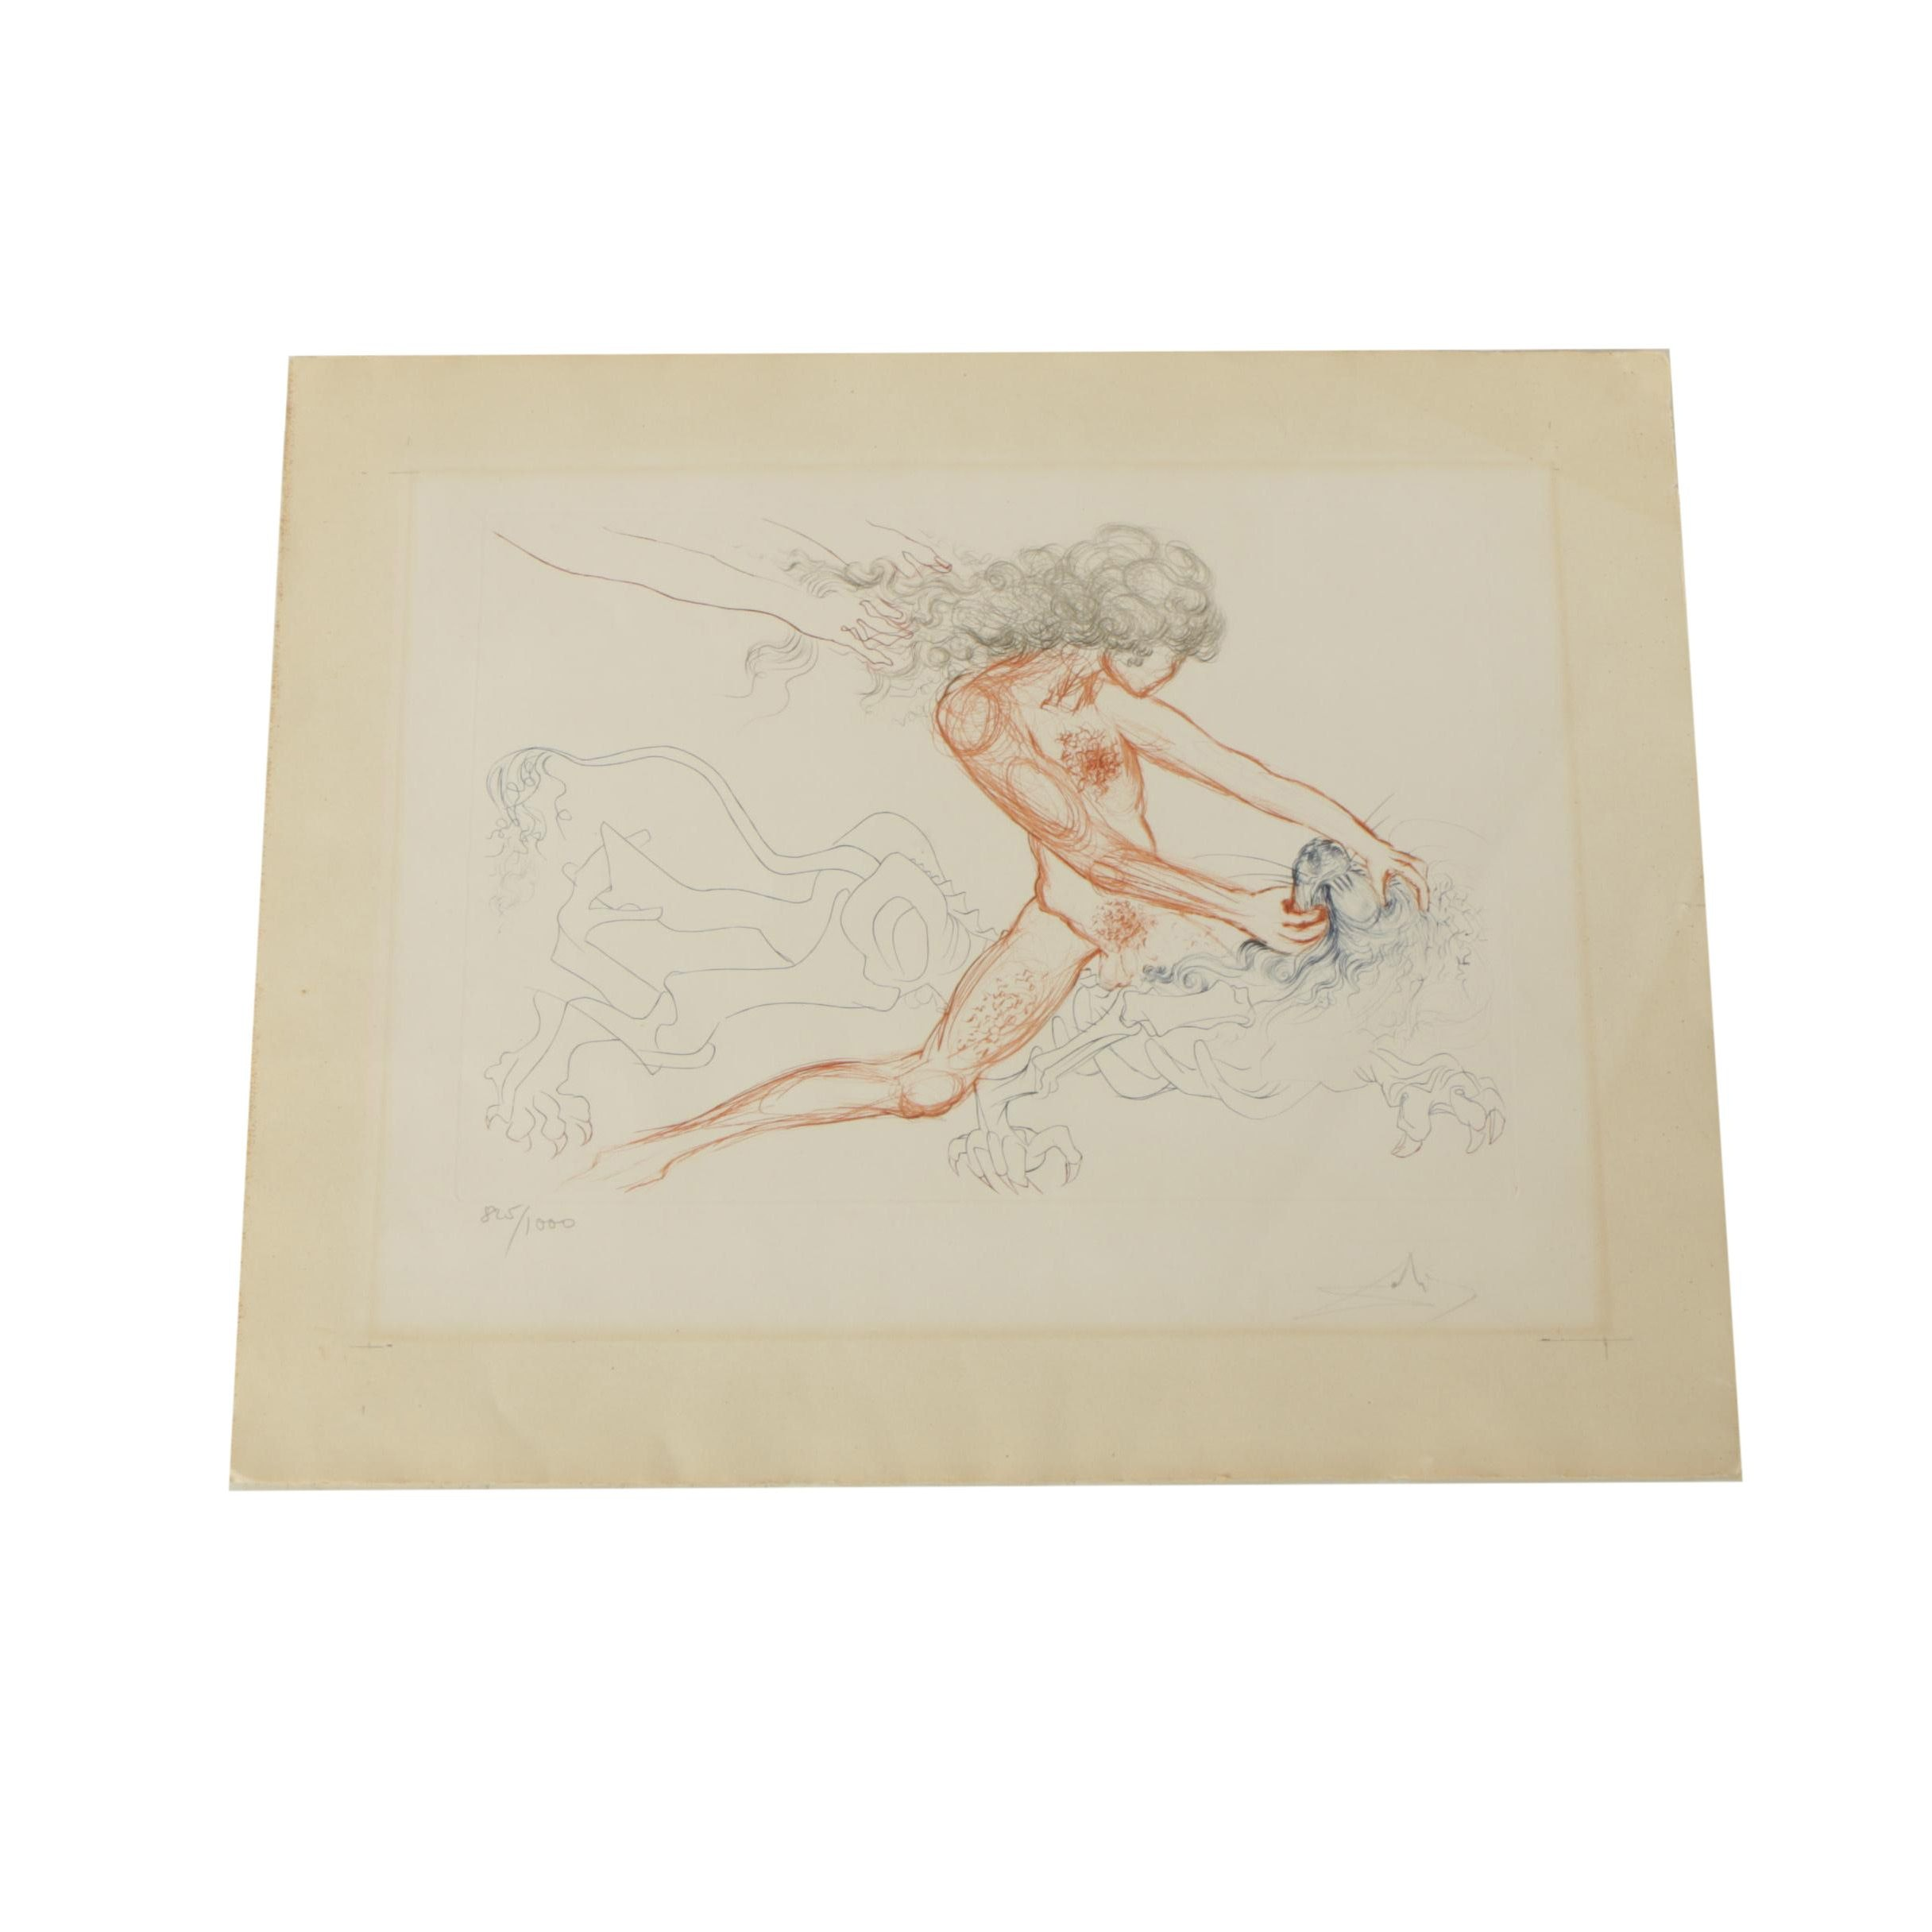 "Salvador Dalí Limited Edition Engraving on Paper ""Samson and Delilah"""